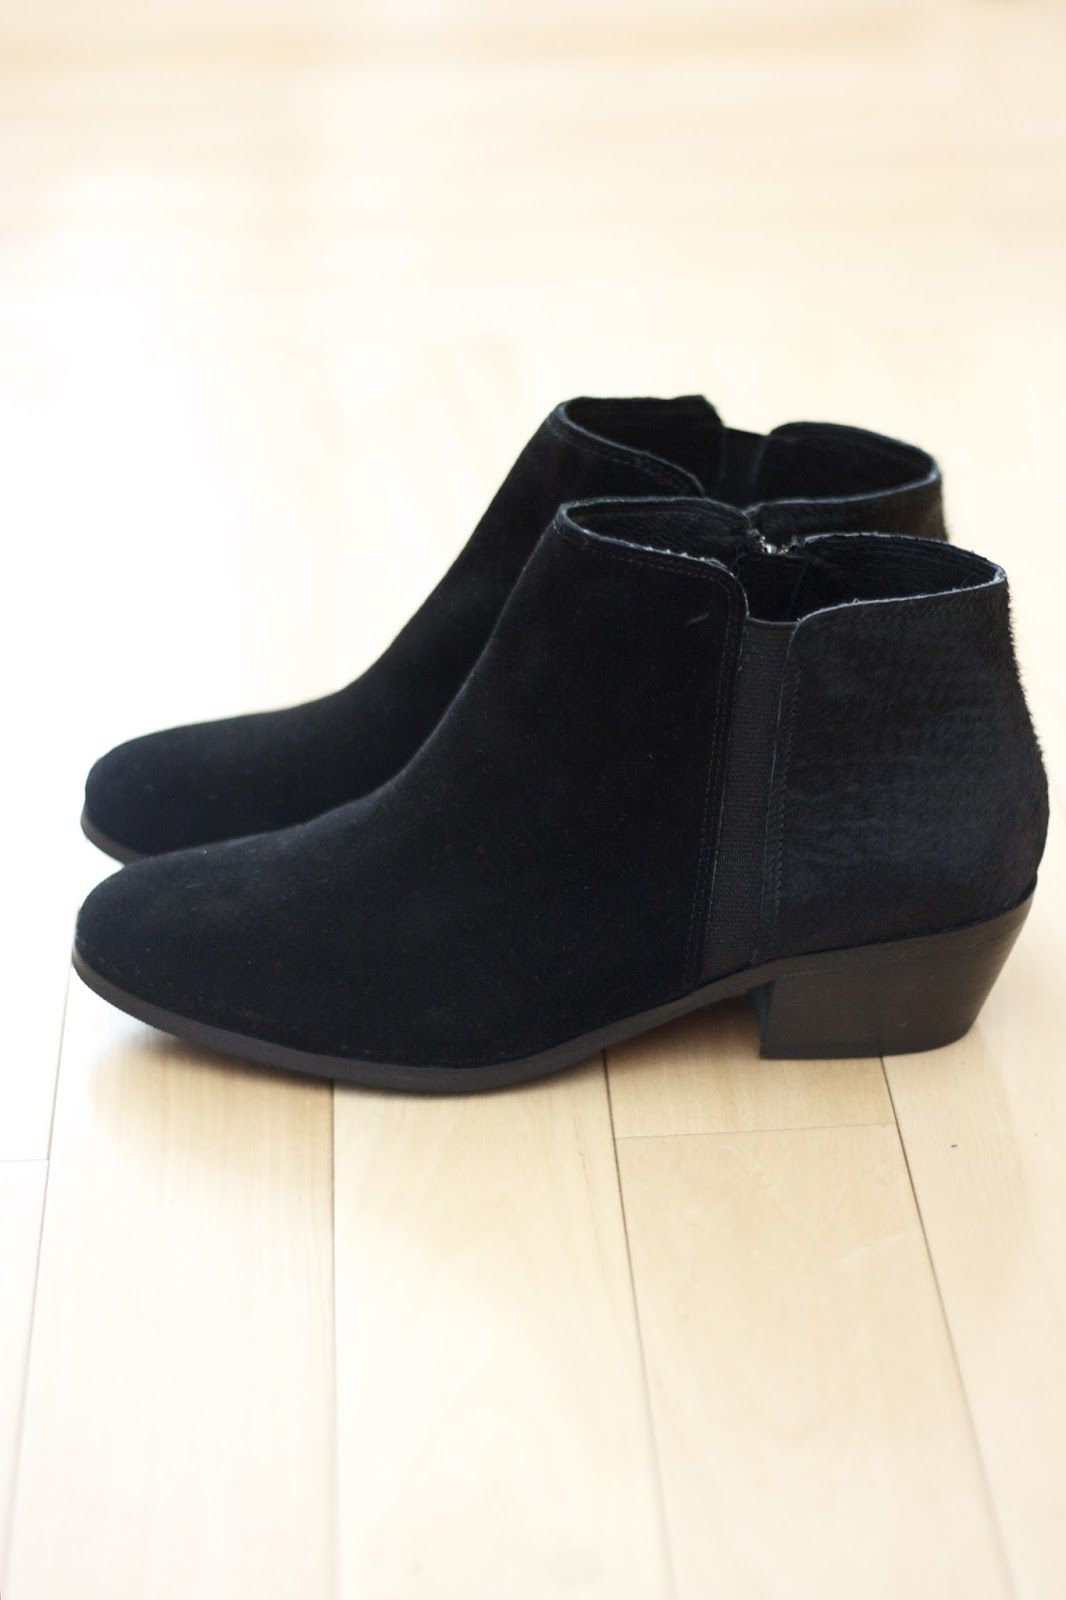 Aldo ankle booties | C&C | In My Closet | Pinterest | Ankle boots ...